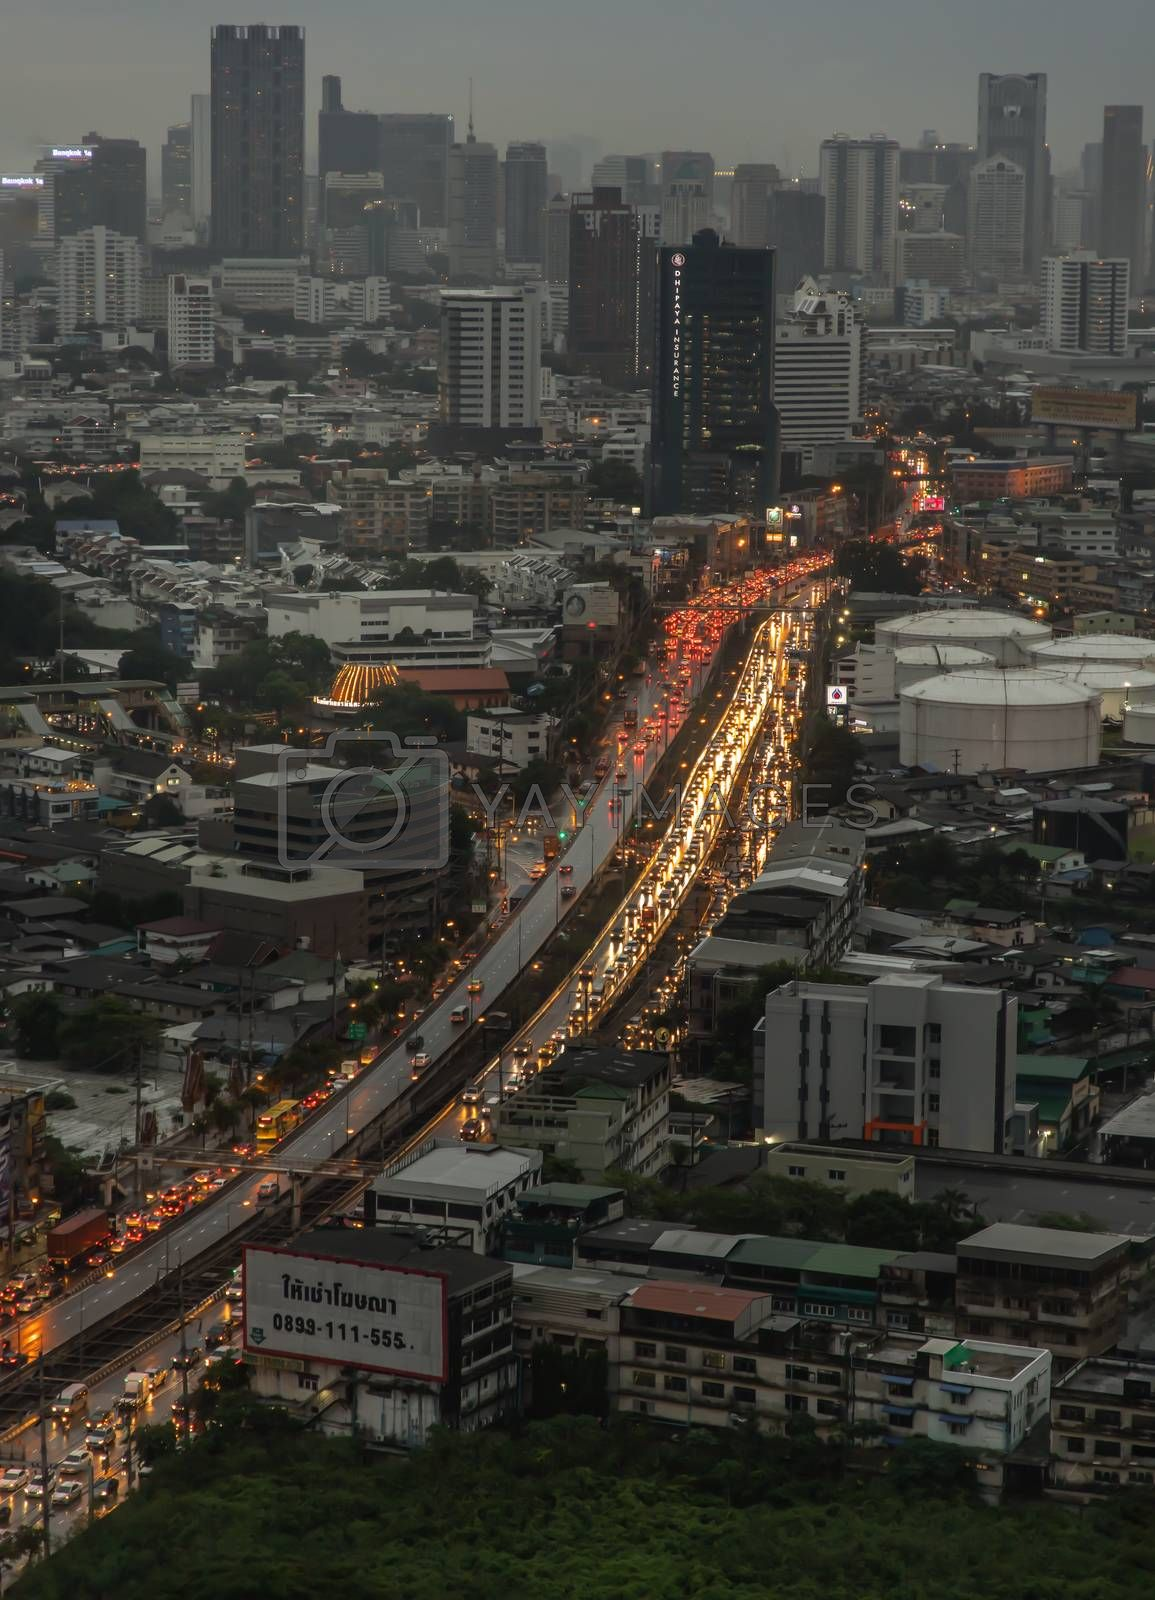 Bangkok, Thailand - Jun 17, 2020 : City view of Bangkok before the sunset creates energetic feeling to get ready for the day waiting ahead. No focus, specifically.